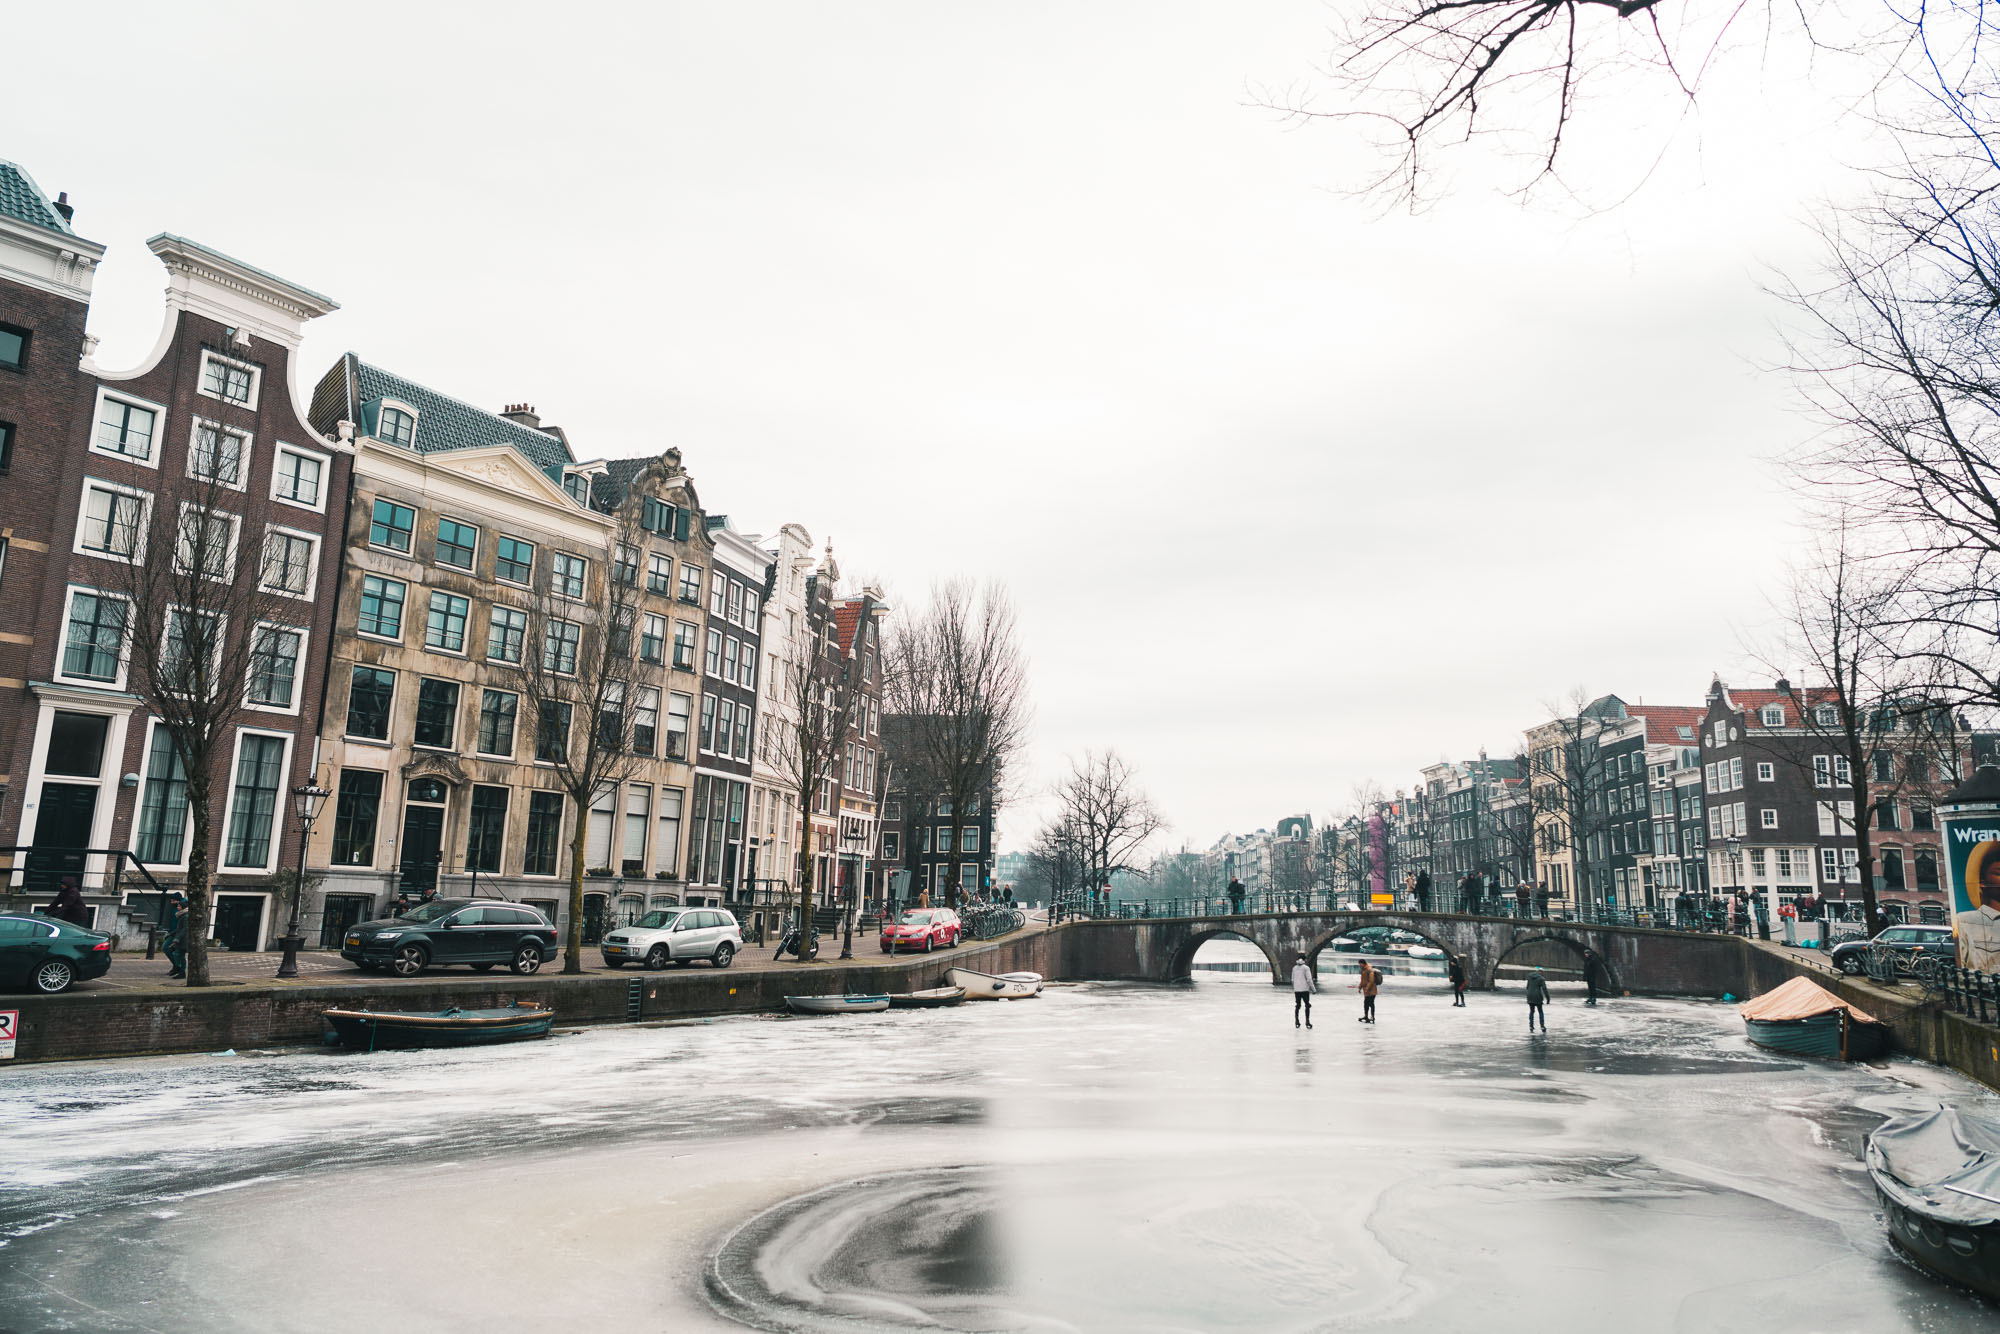 Frozen canals in winter at sunset in Amsterdam The Netherlands